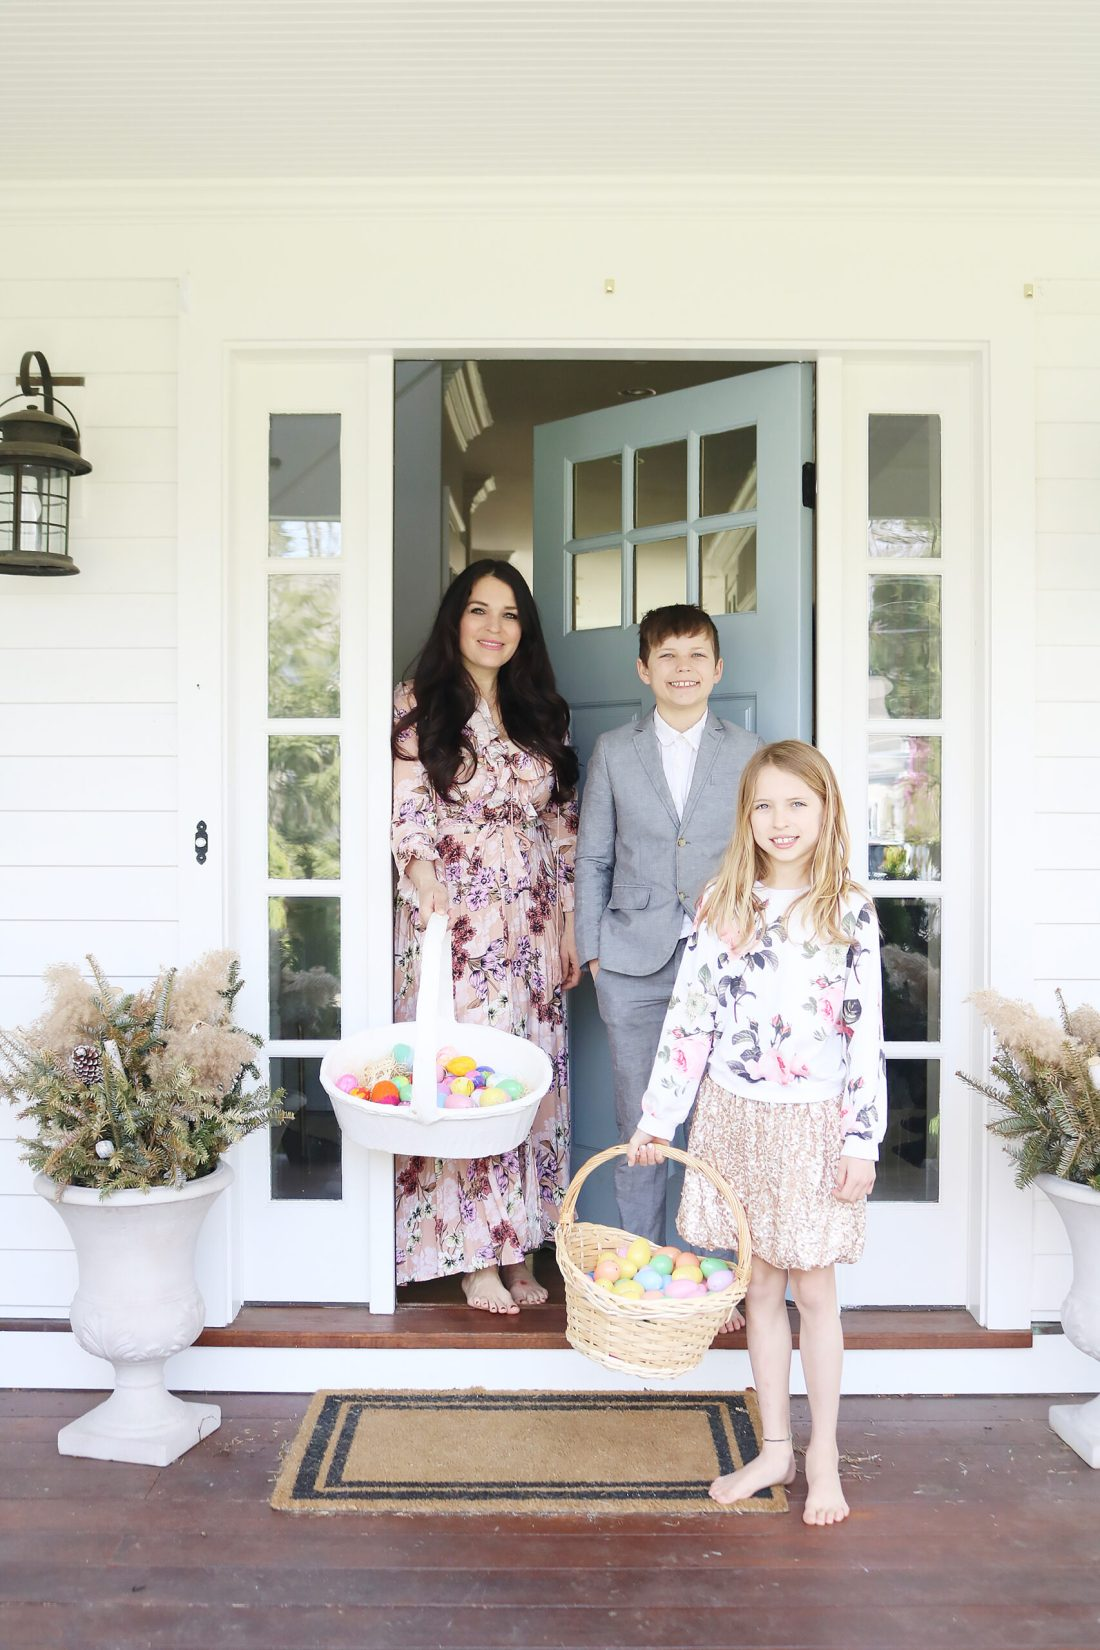 Easter Dresses This Season that are a little bit of lace, floral and pastel colors    Darling Darleen Top CT Lifestyle blogger #darlingdarleen #easterdresses